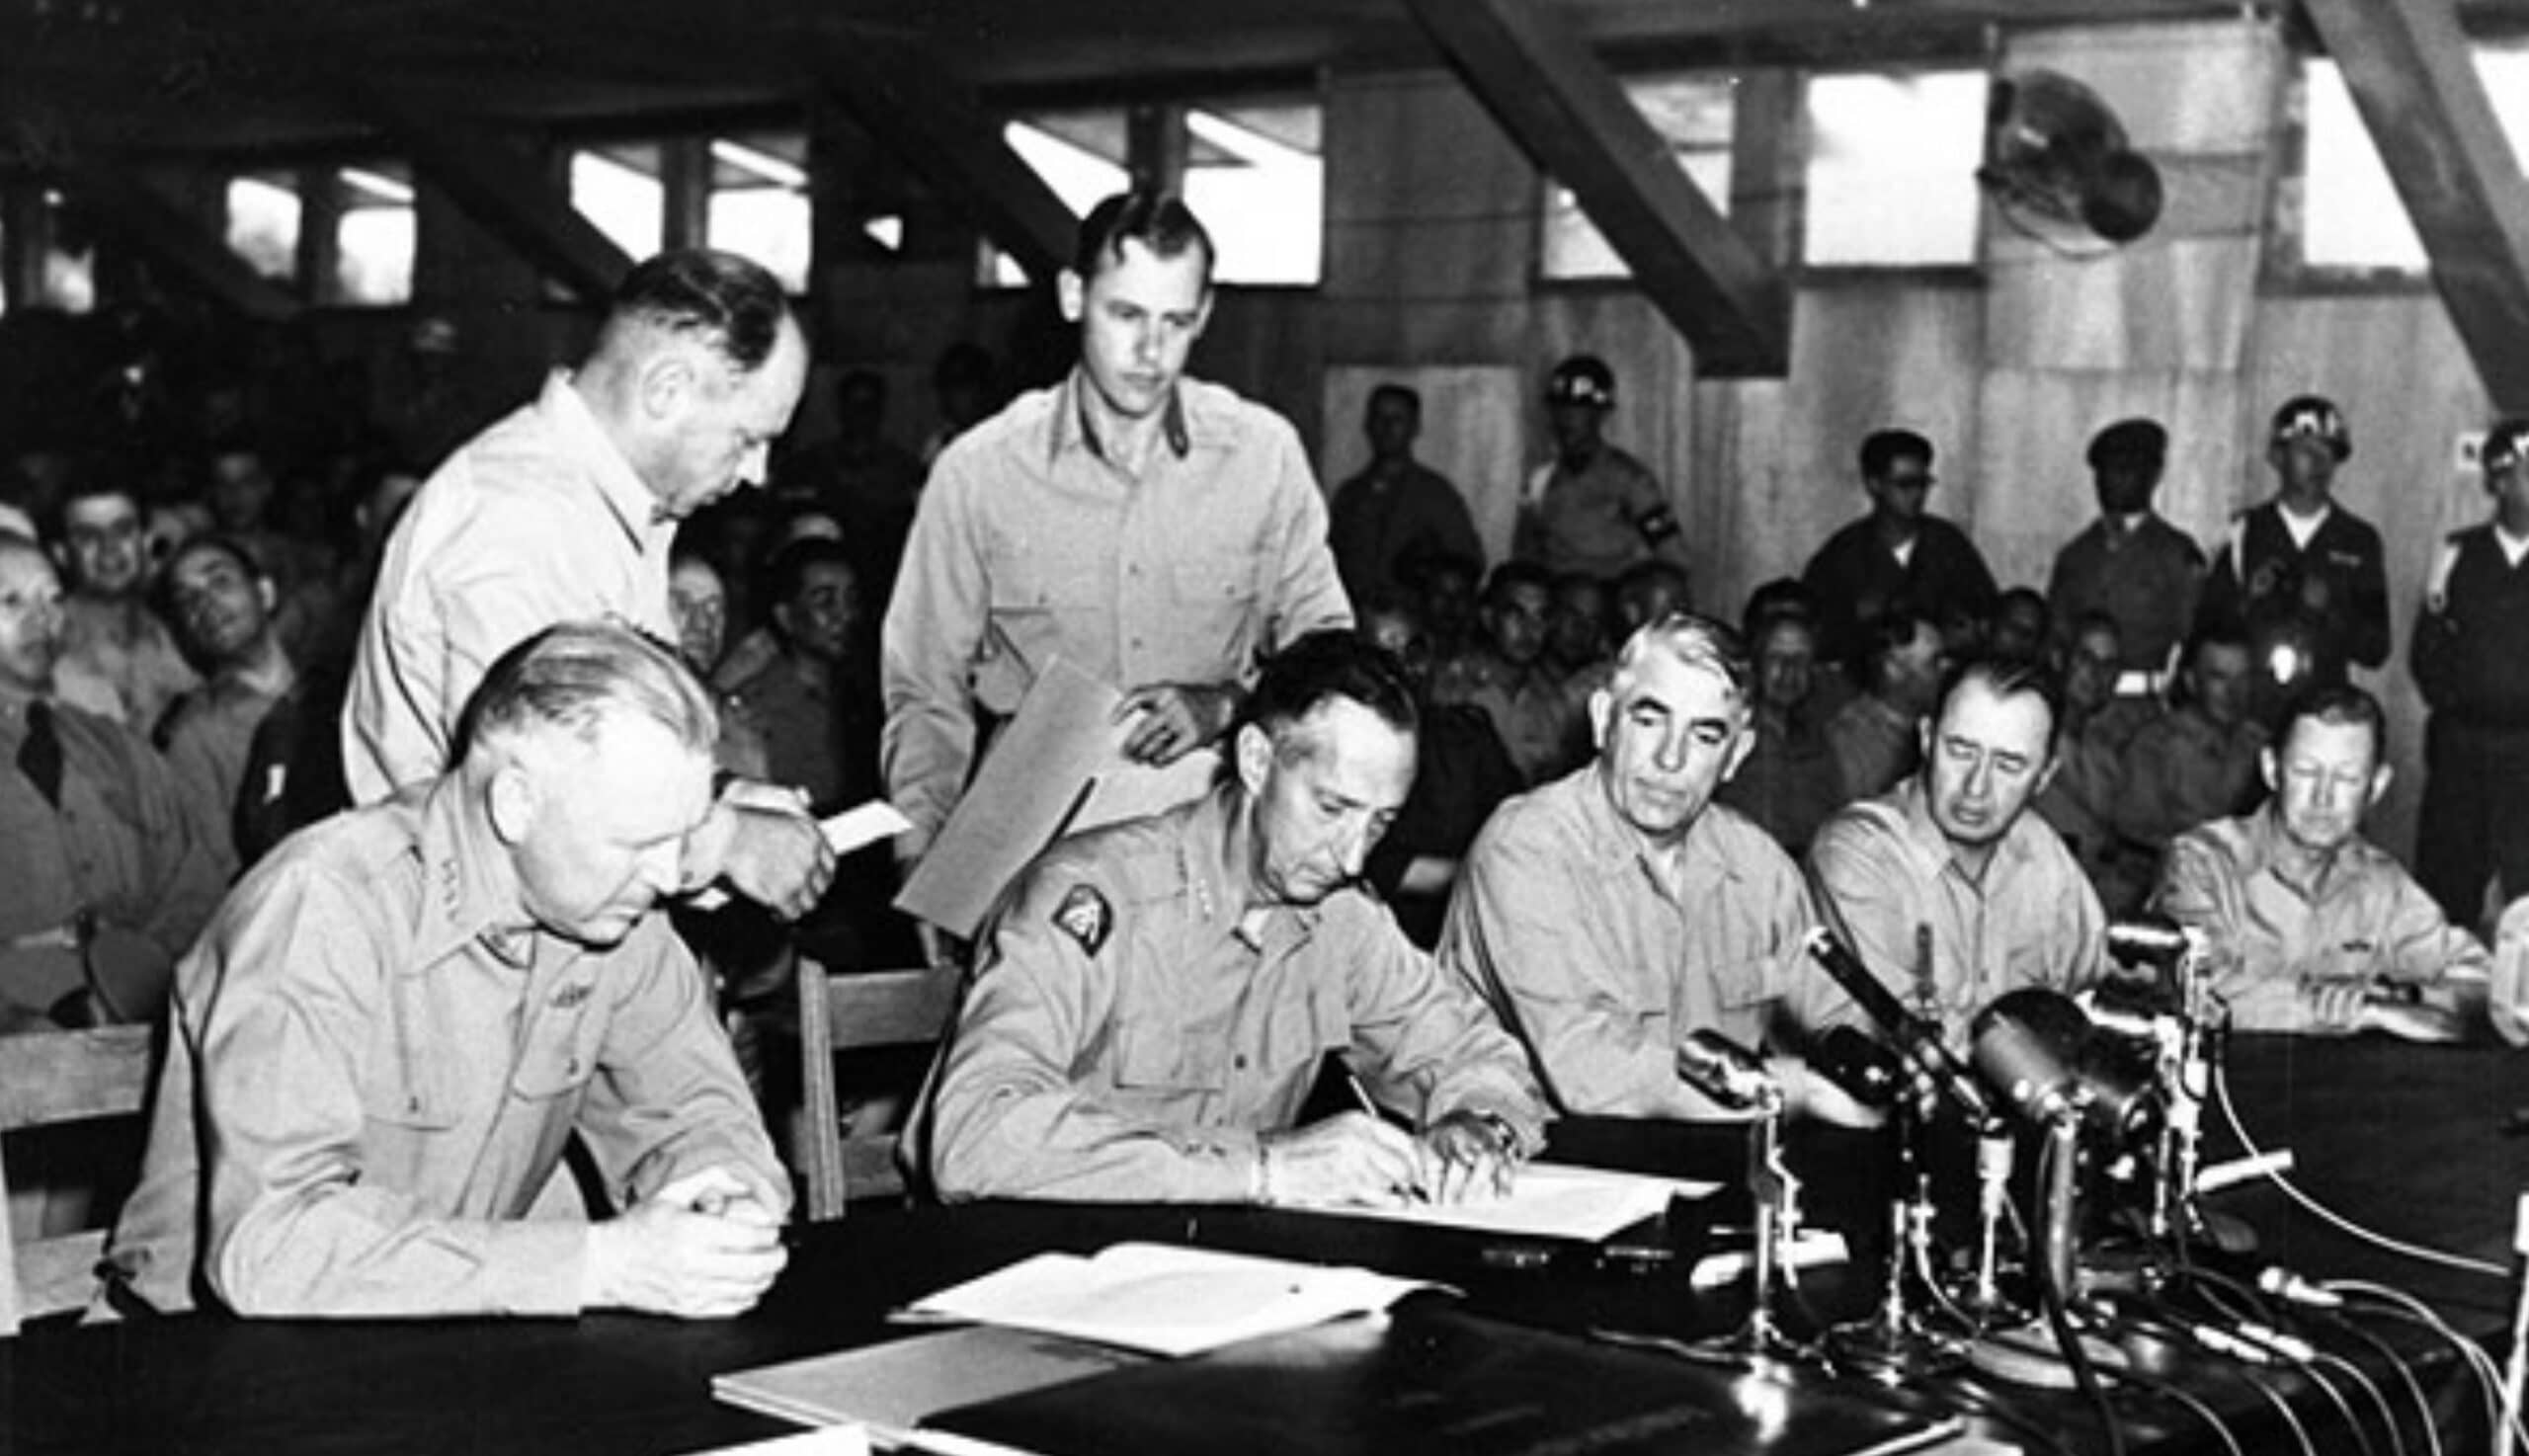 General Clark signs the Korean Armistice Agreement